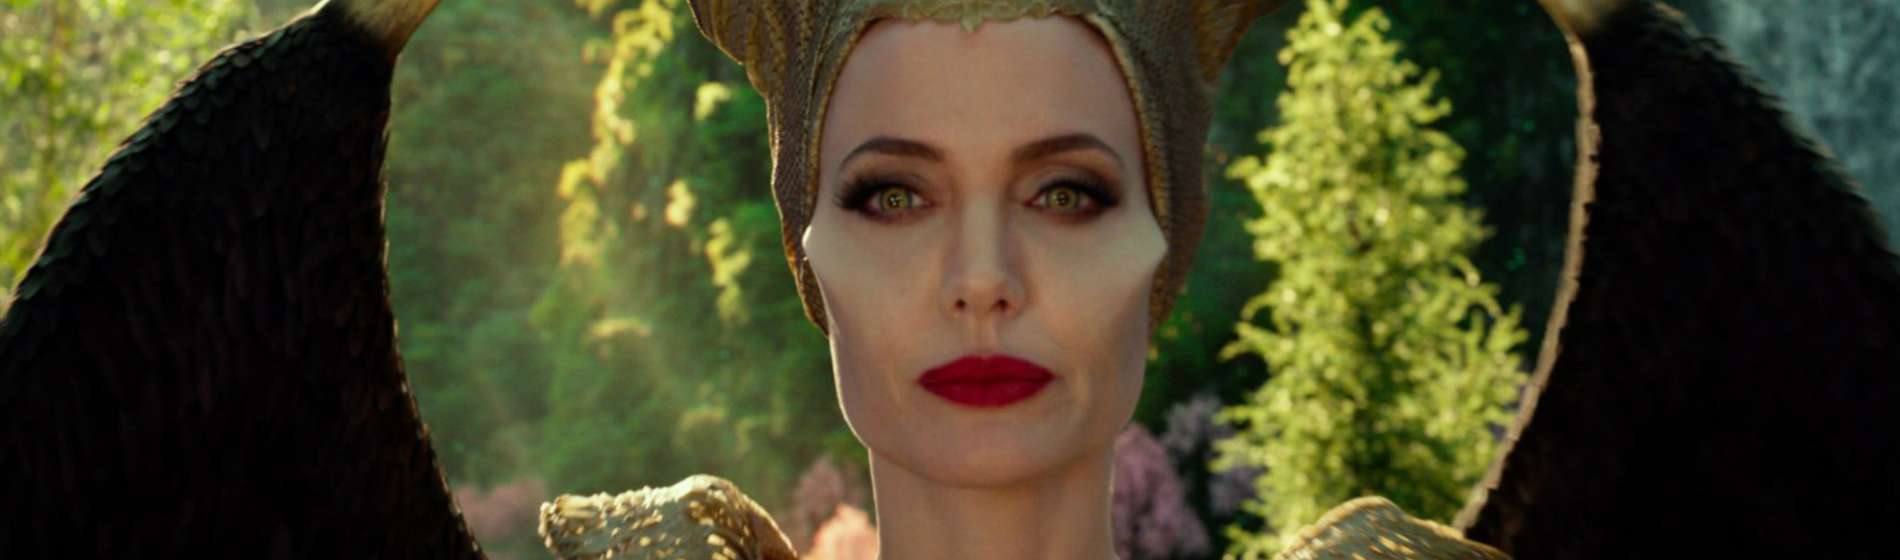 Maleficent Mistress Of Evil Trailer That Shelf